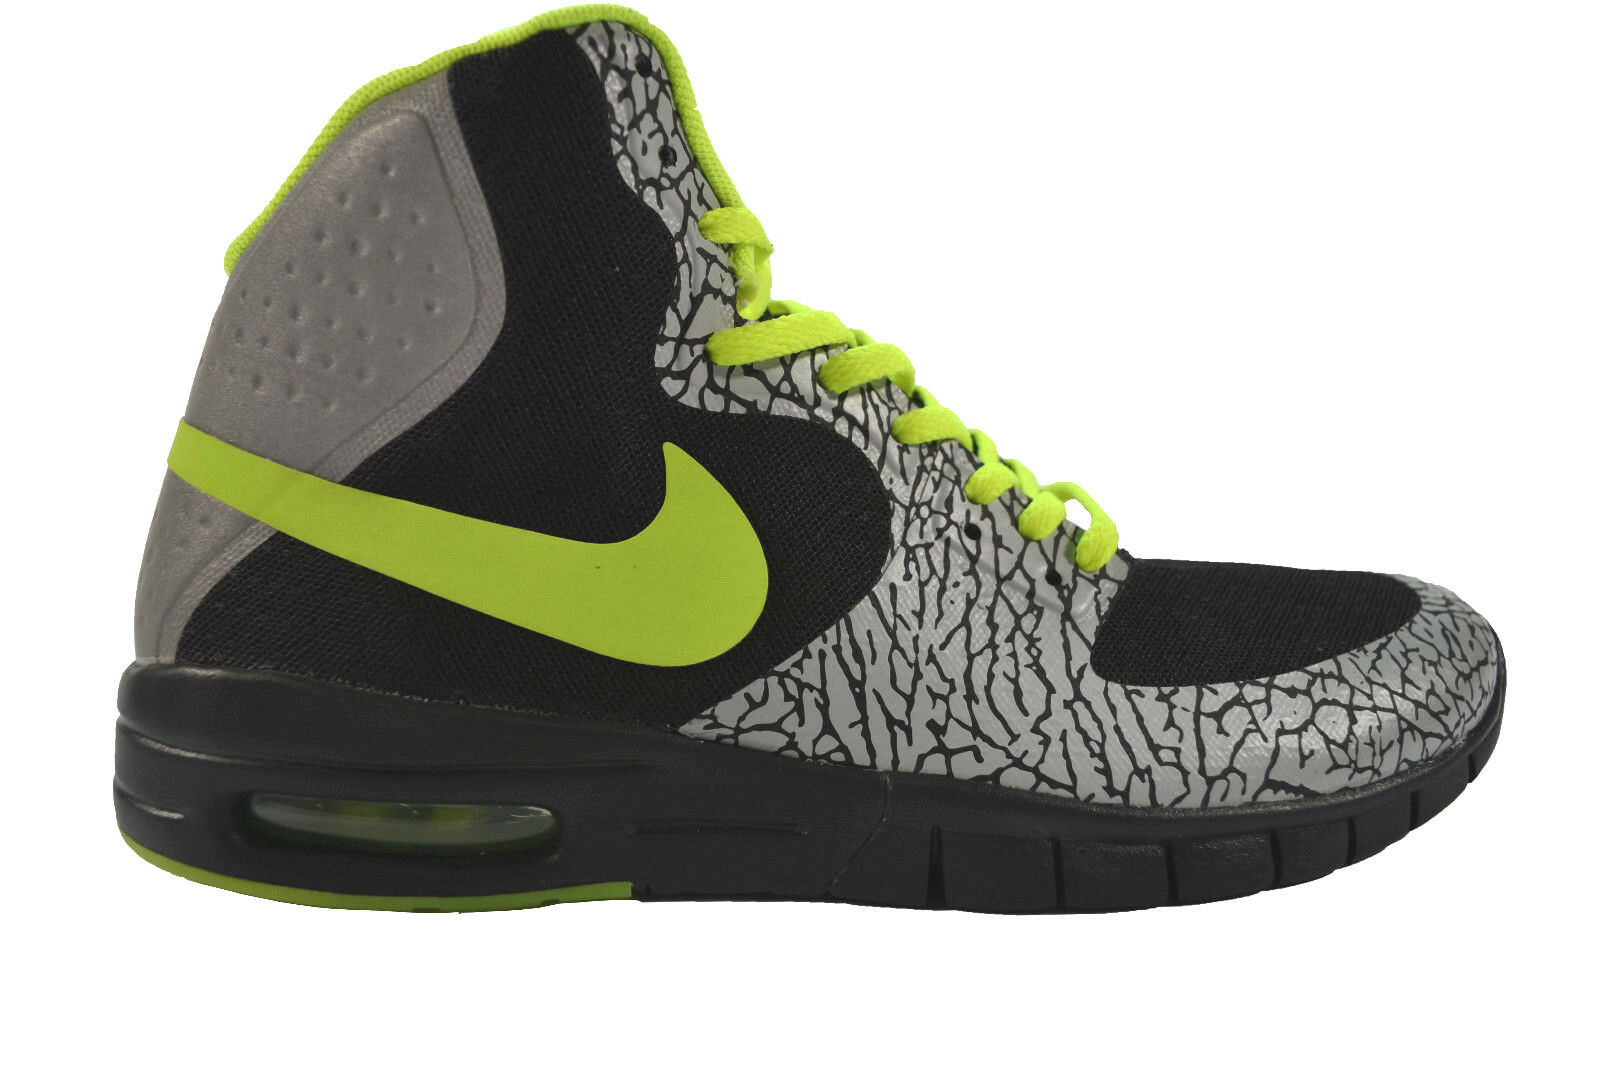 Nike PAUL RODRIGUEZ HYPERFUSE MAX P Black Volt Metallic Silver Price reduction Men's Shoes New shoes for men and women, limited time discount